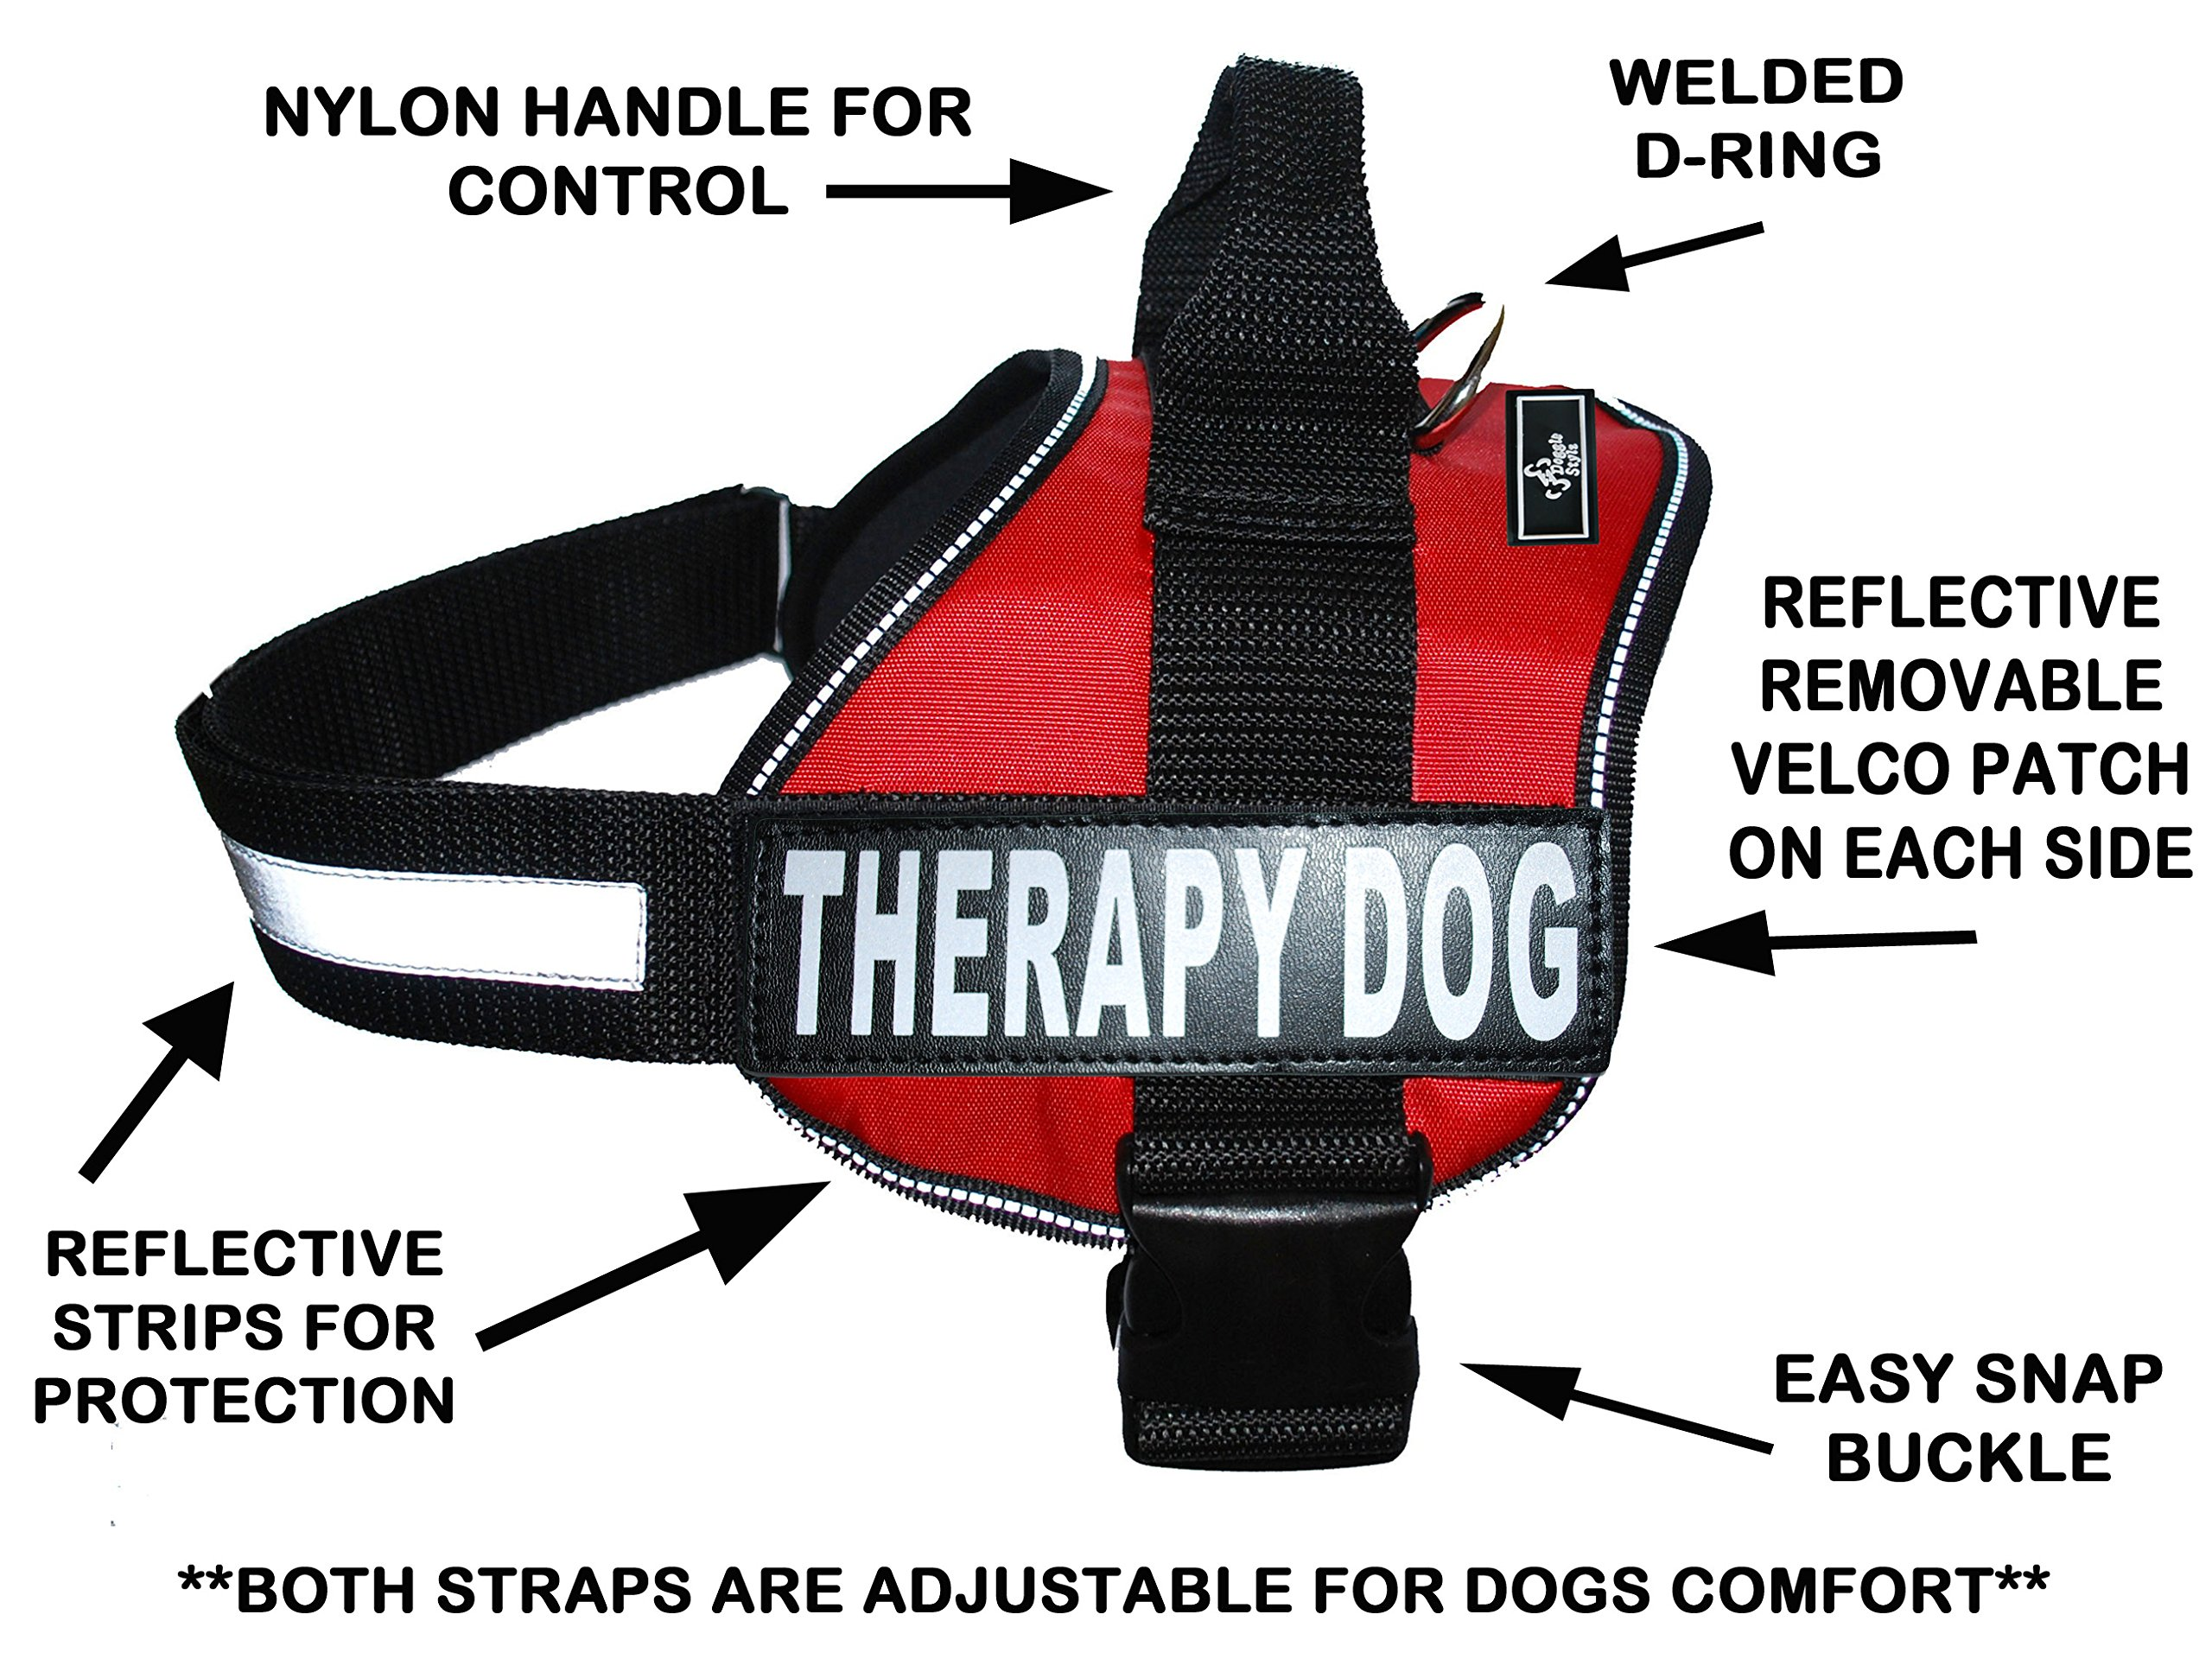 Therapy Dog Harness Service Working Vest Jacket Removable Velcro Patches,Purchase Comes 2 Therapy Dog Reflective pathces. Please Measure Dog Before Ordering. (Girth 30-42'', Red)